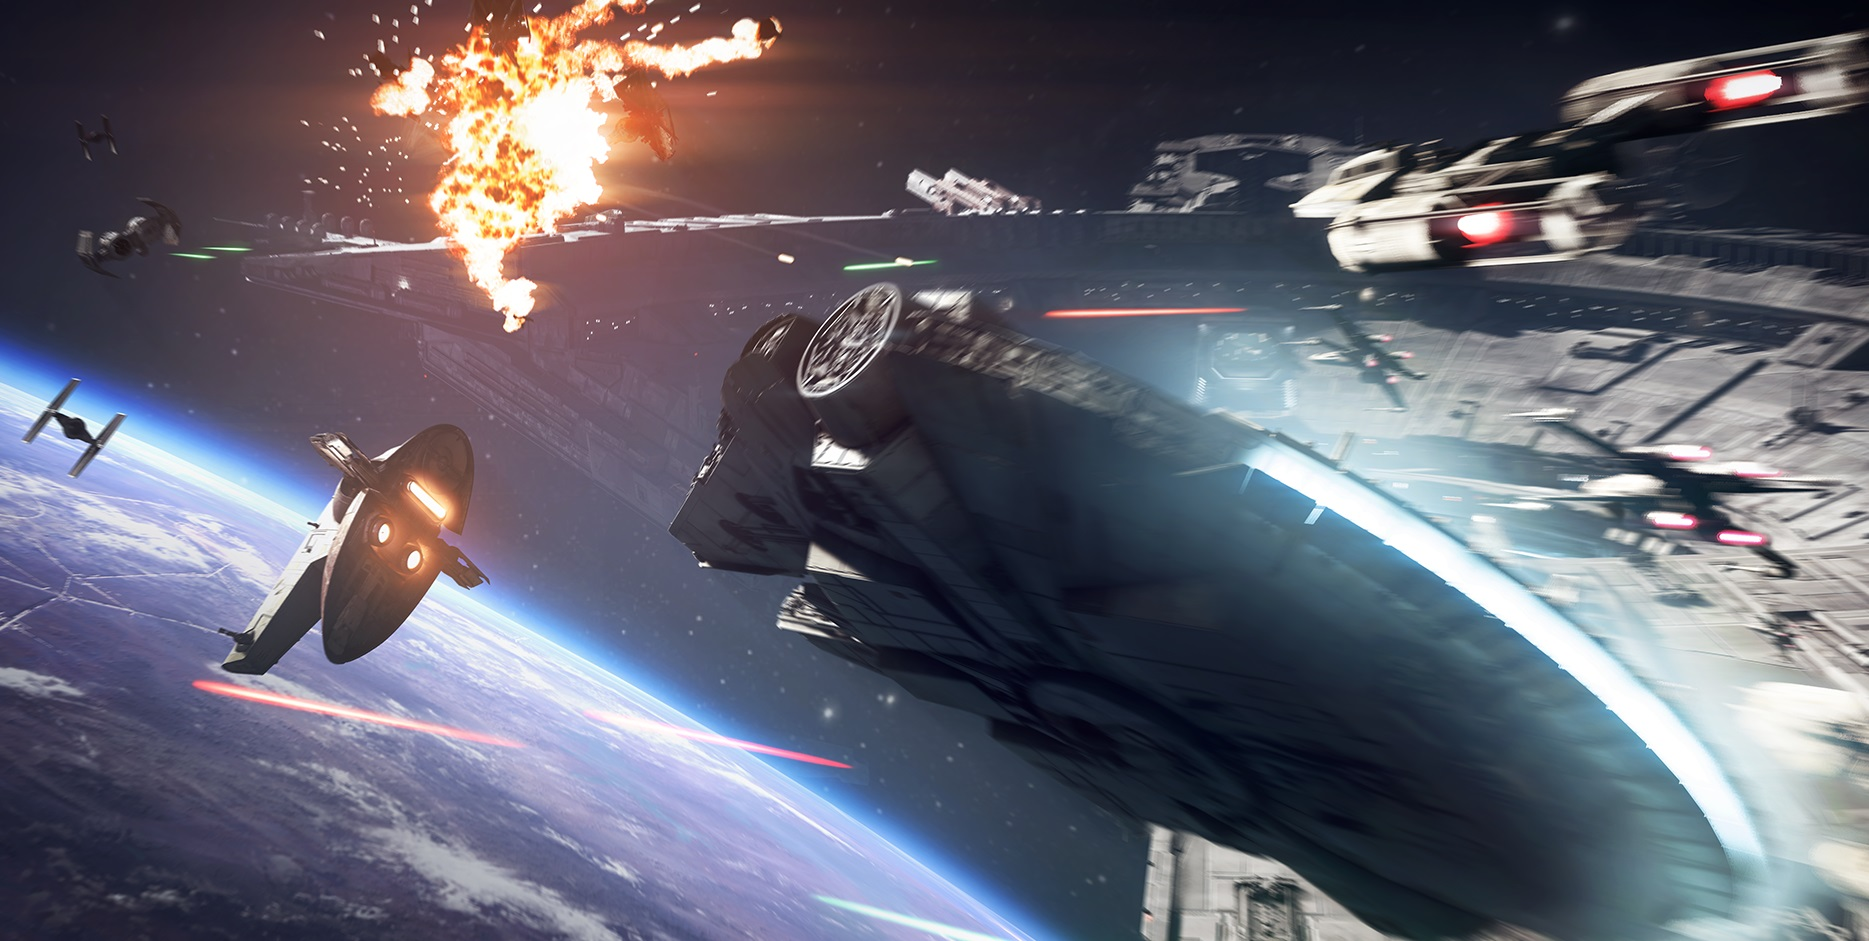 Star Wars Battlefront II Is Out Now On EA Access